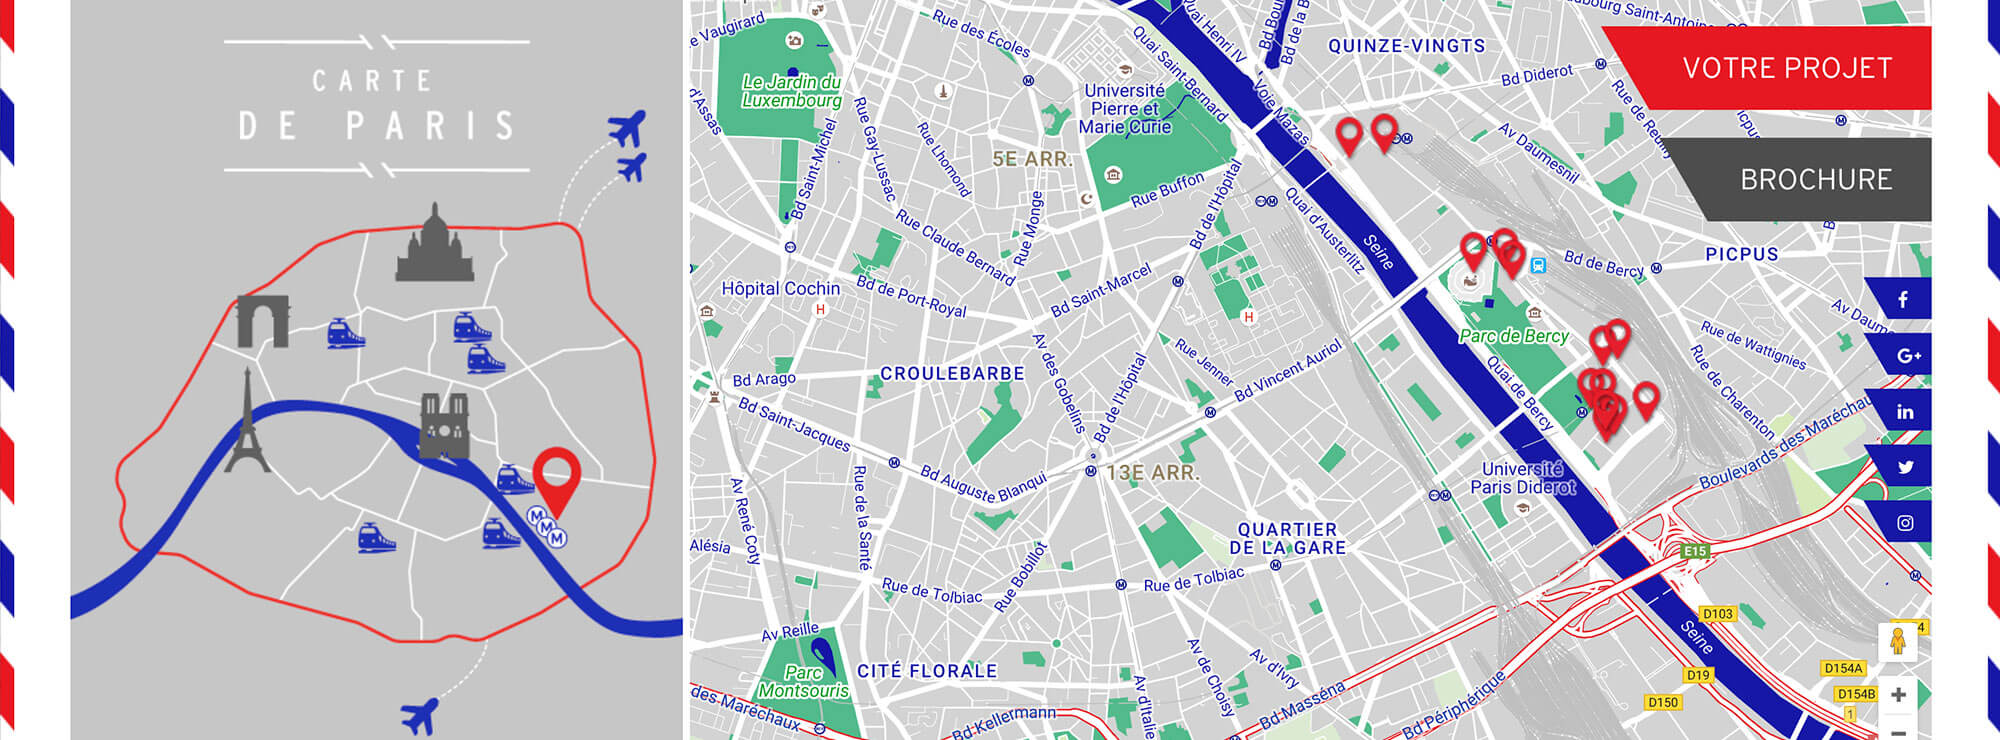 12.destination paris bercy acces map accessibilite.jpg